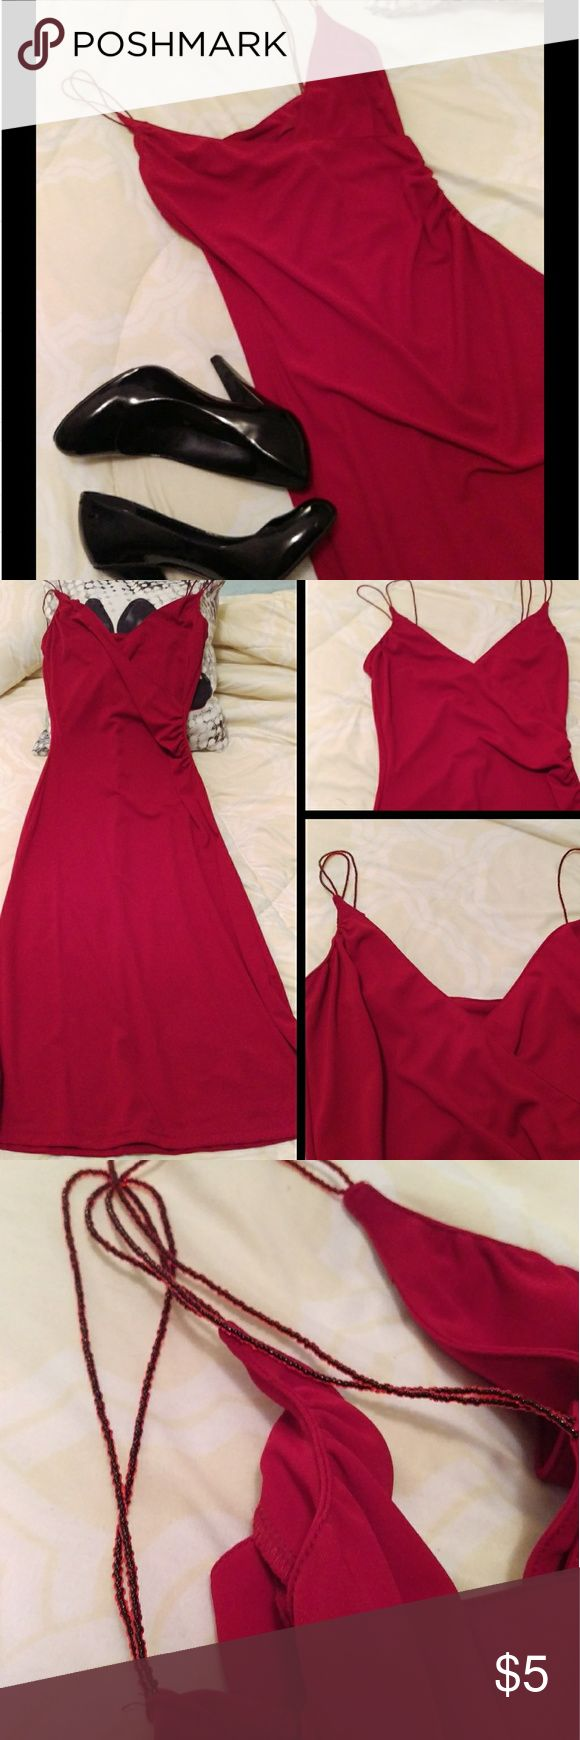 Red H & M Dress Red H & M dress size 4 Thin red beaded straps  Ruching on the left side (slight damage, see pic).  Gently used, not sure what caused it but there are multiple thread pulls on the front bottom of the dress (see pics) and a small stain (pictured under the penny). Price reflects damage, sold as is. Please feel free to ask any questions. H&M Dresses Midi